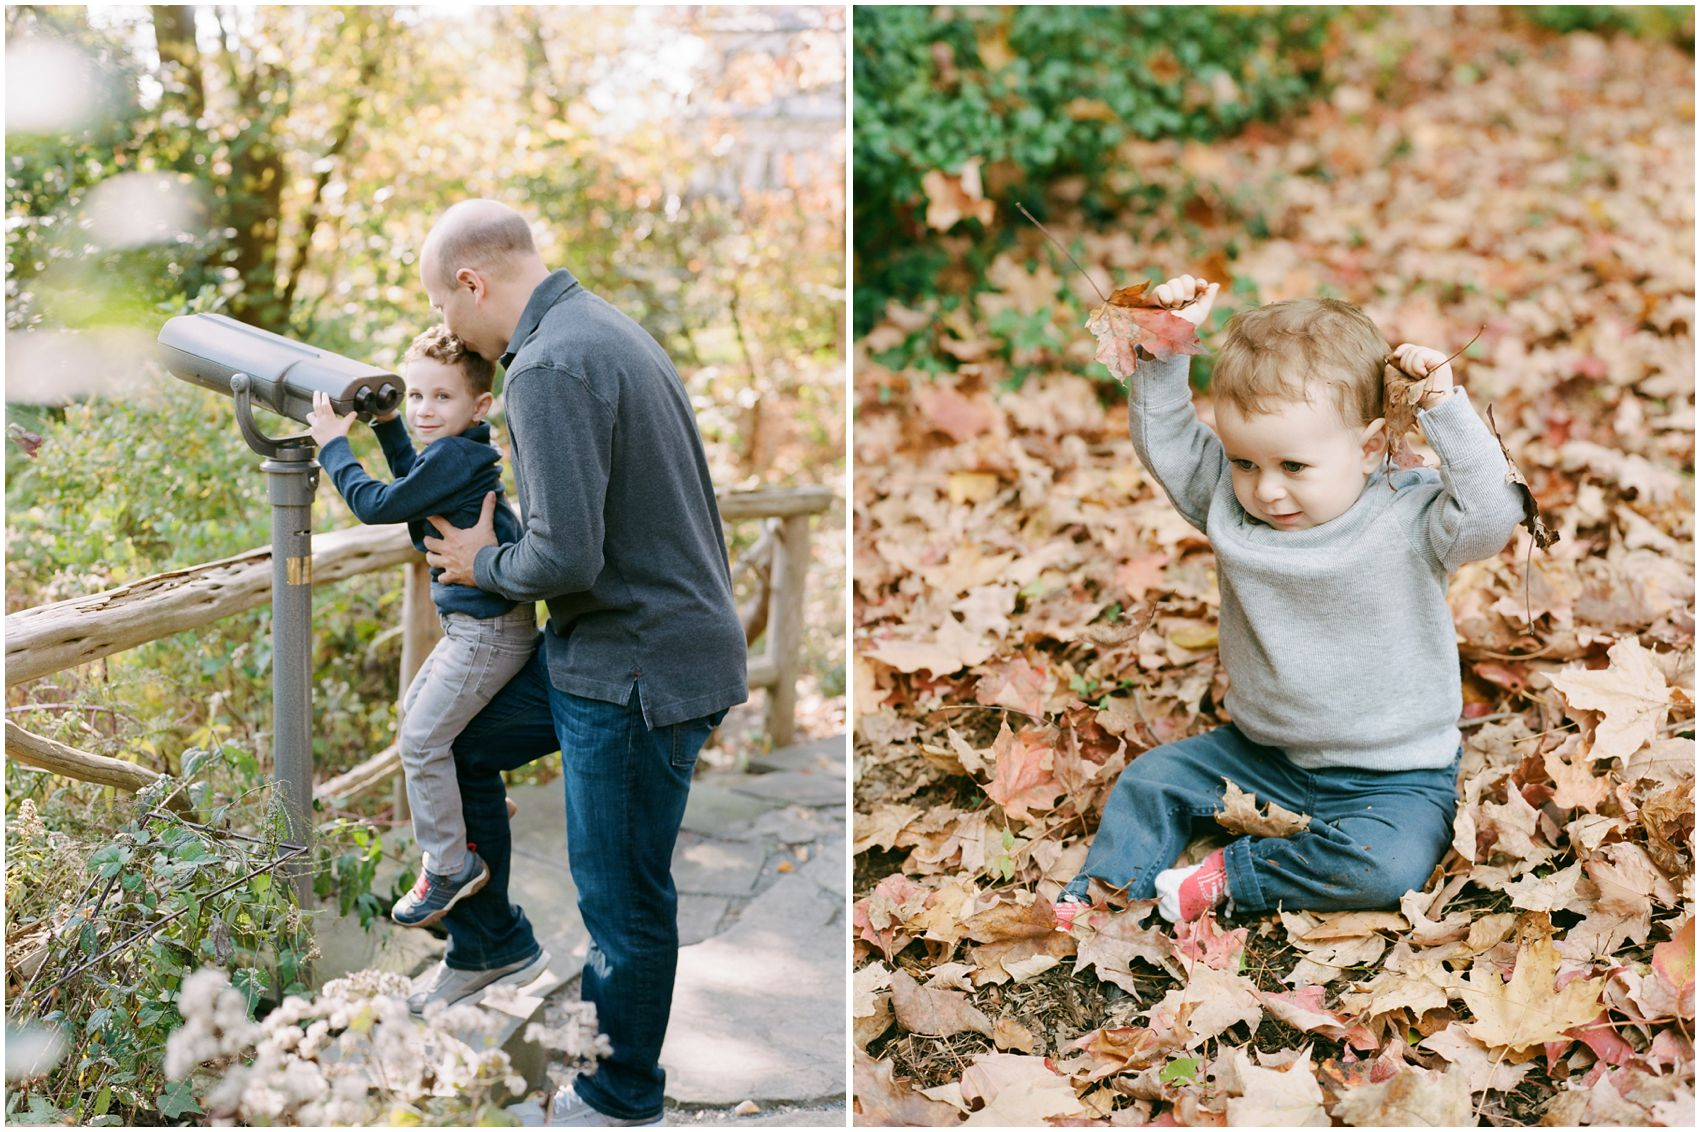 dad and son looking through telescope in the park and playing with fall leaves